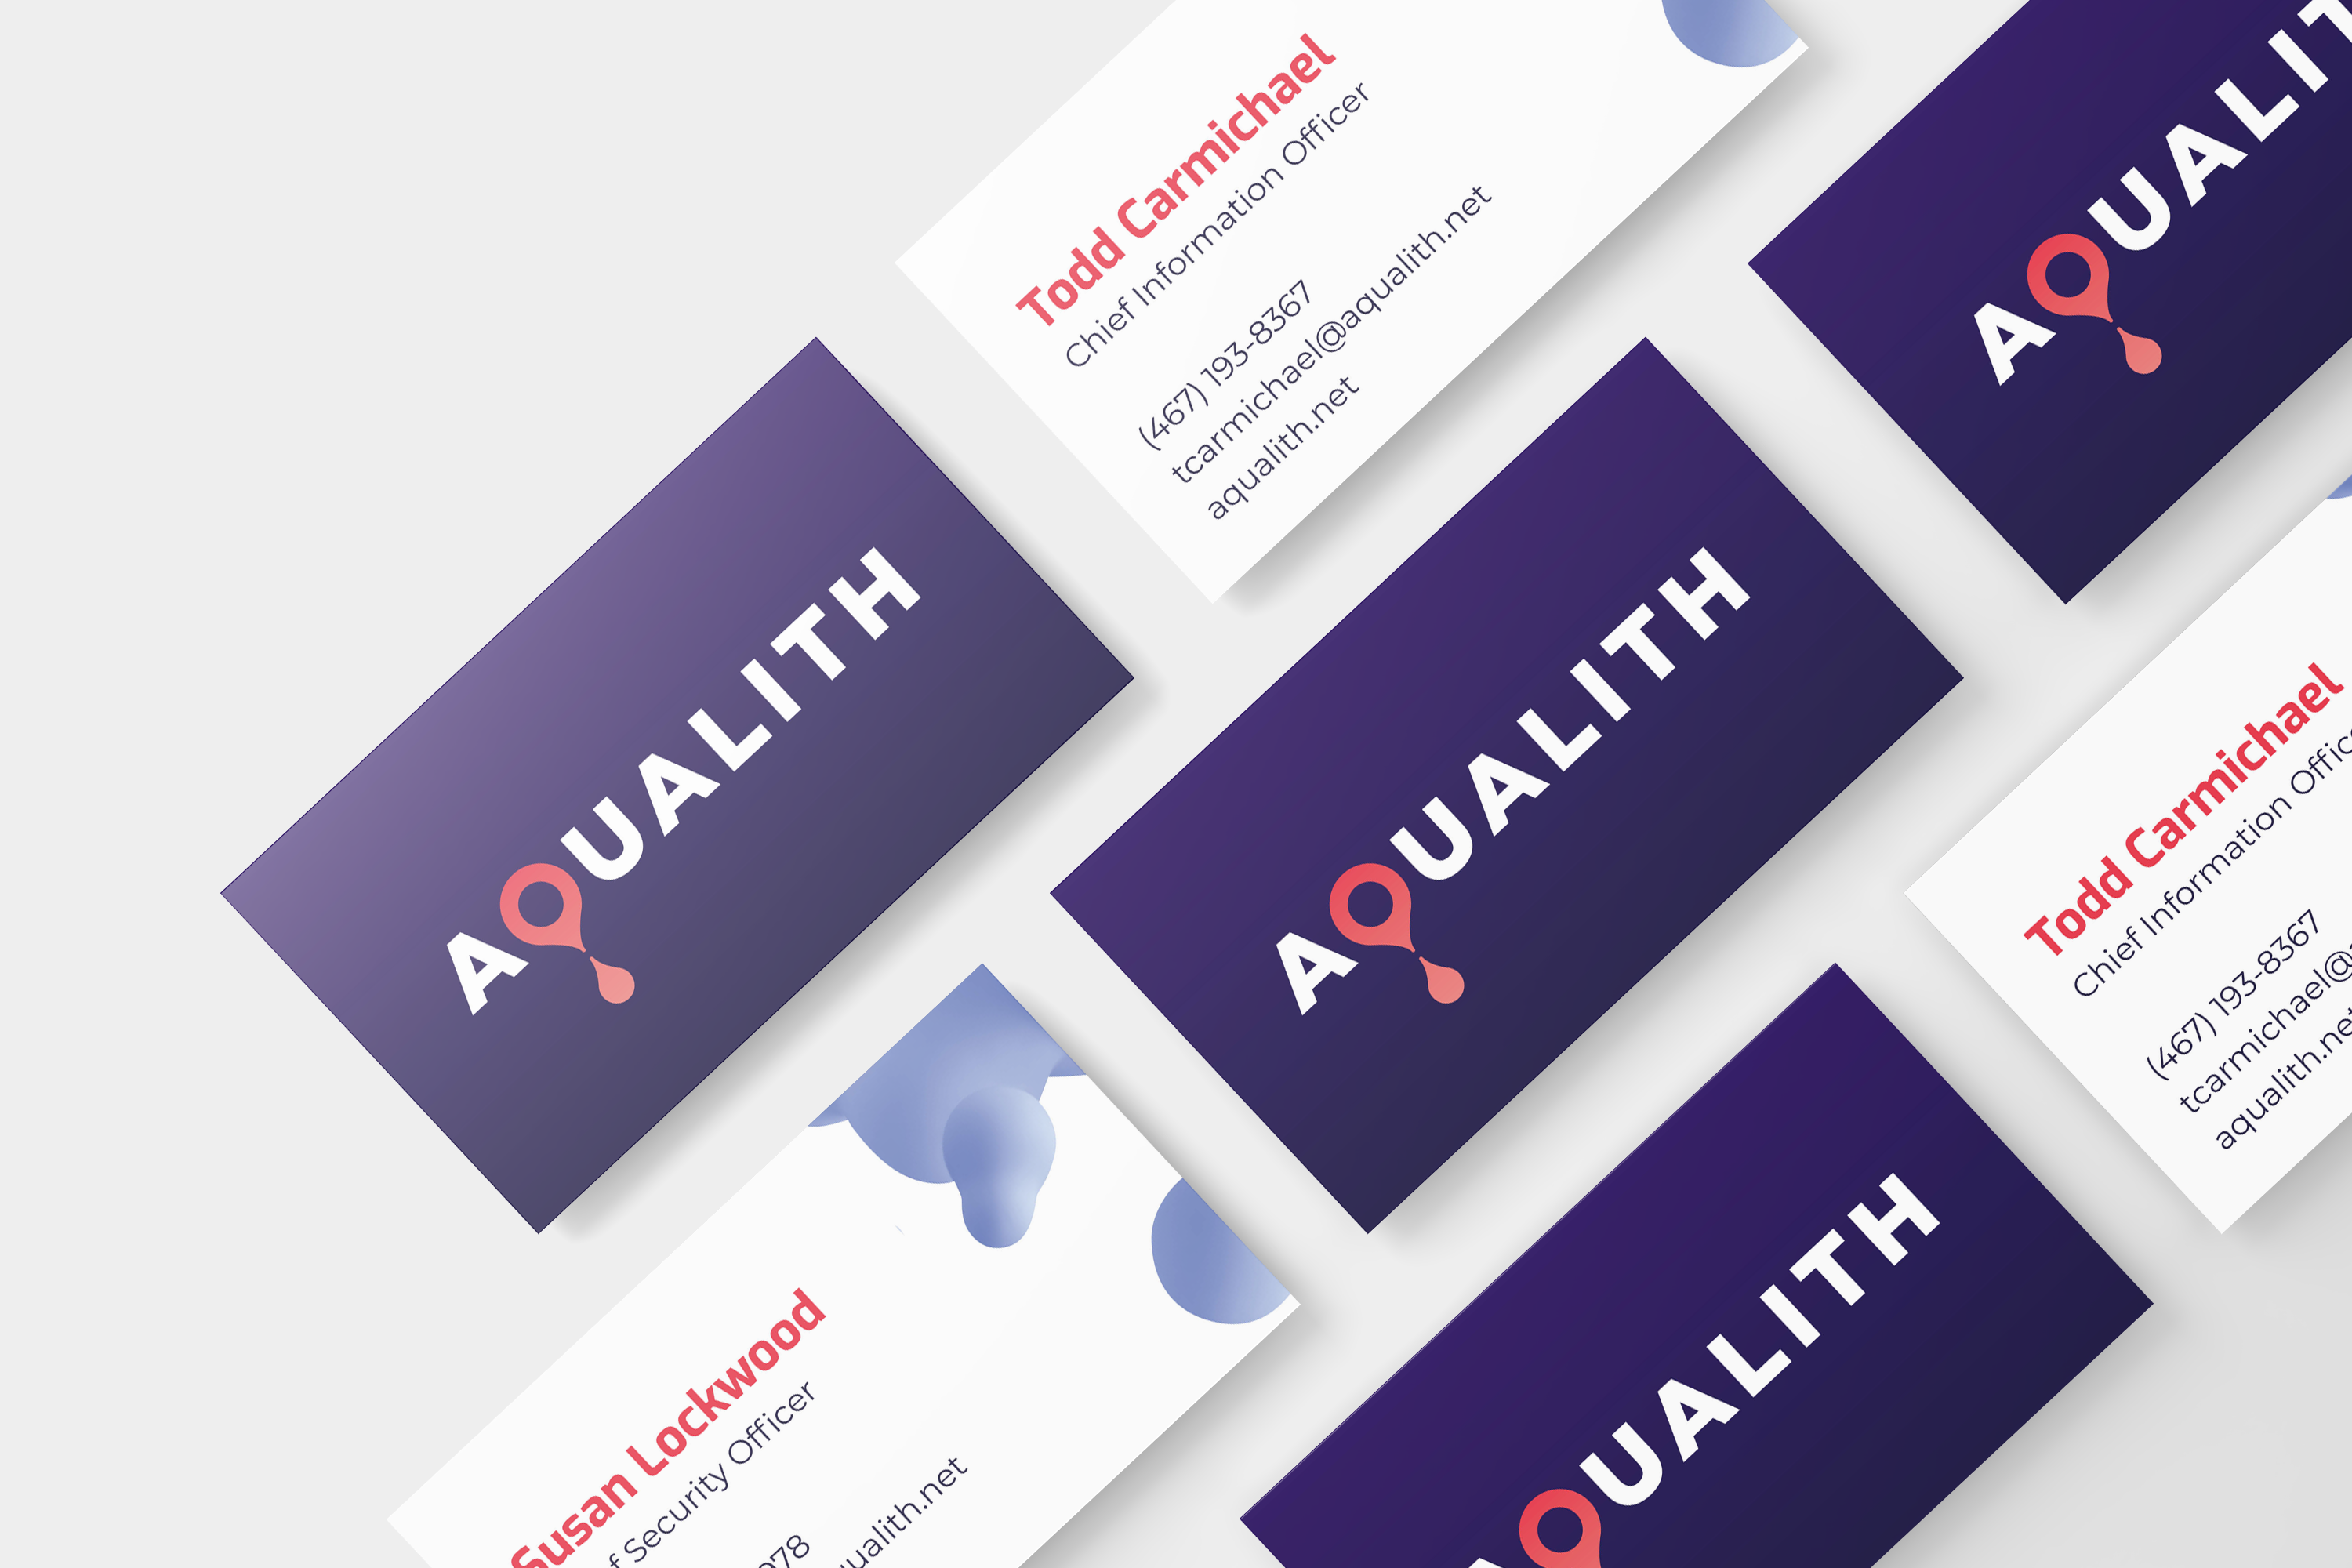 AquaLith business cards mock up